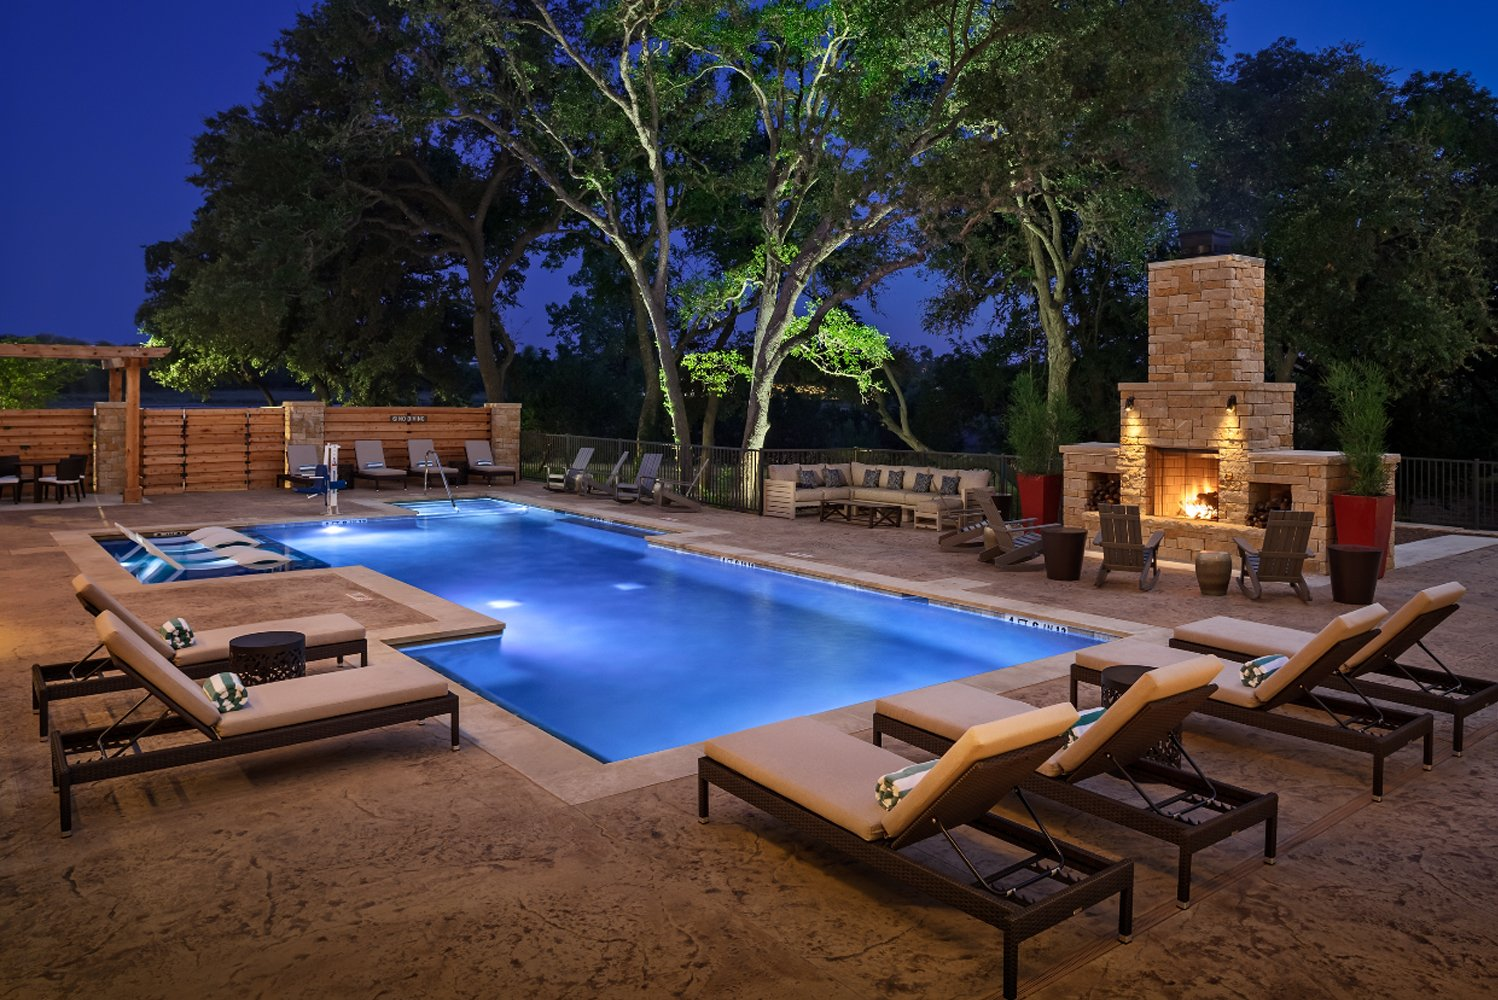 Amenities onsite include a pool and lounge.